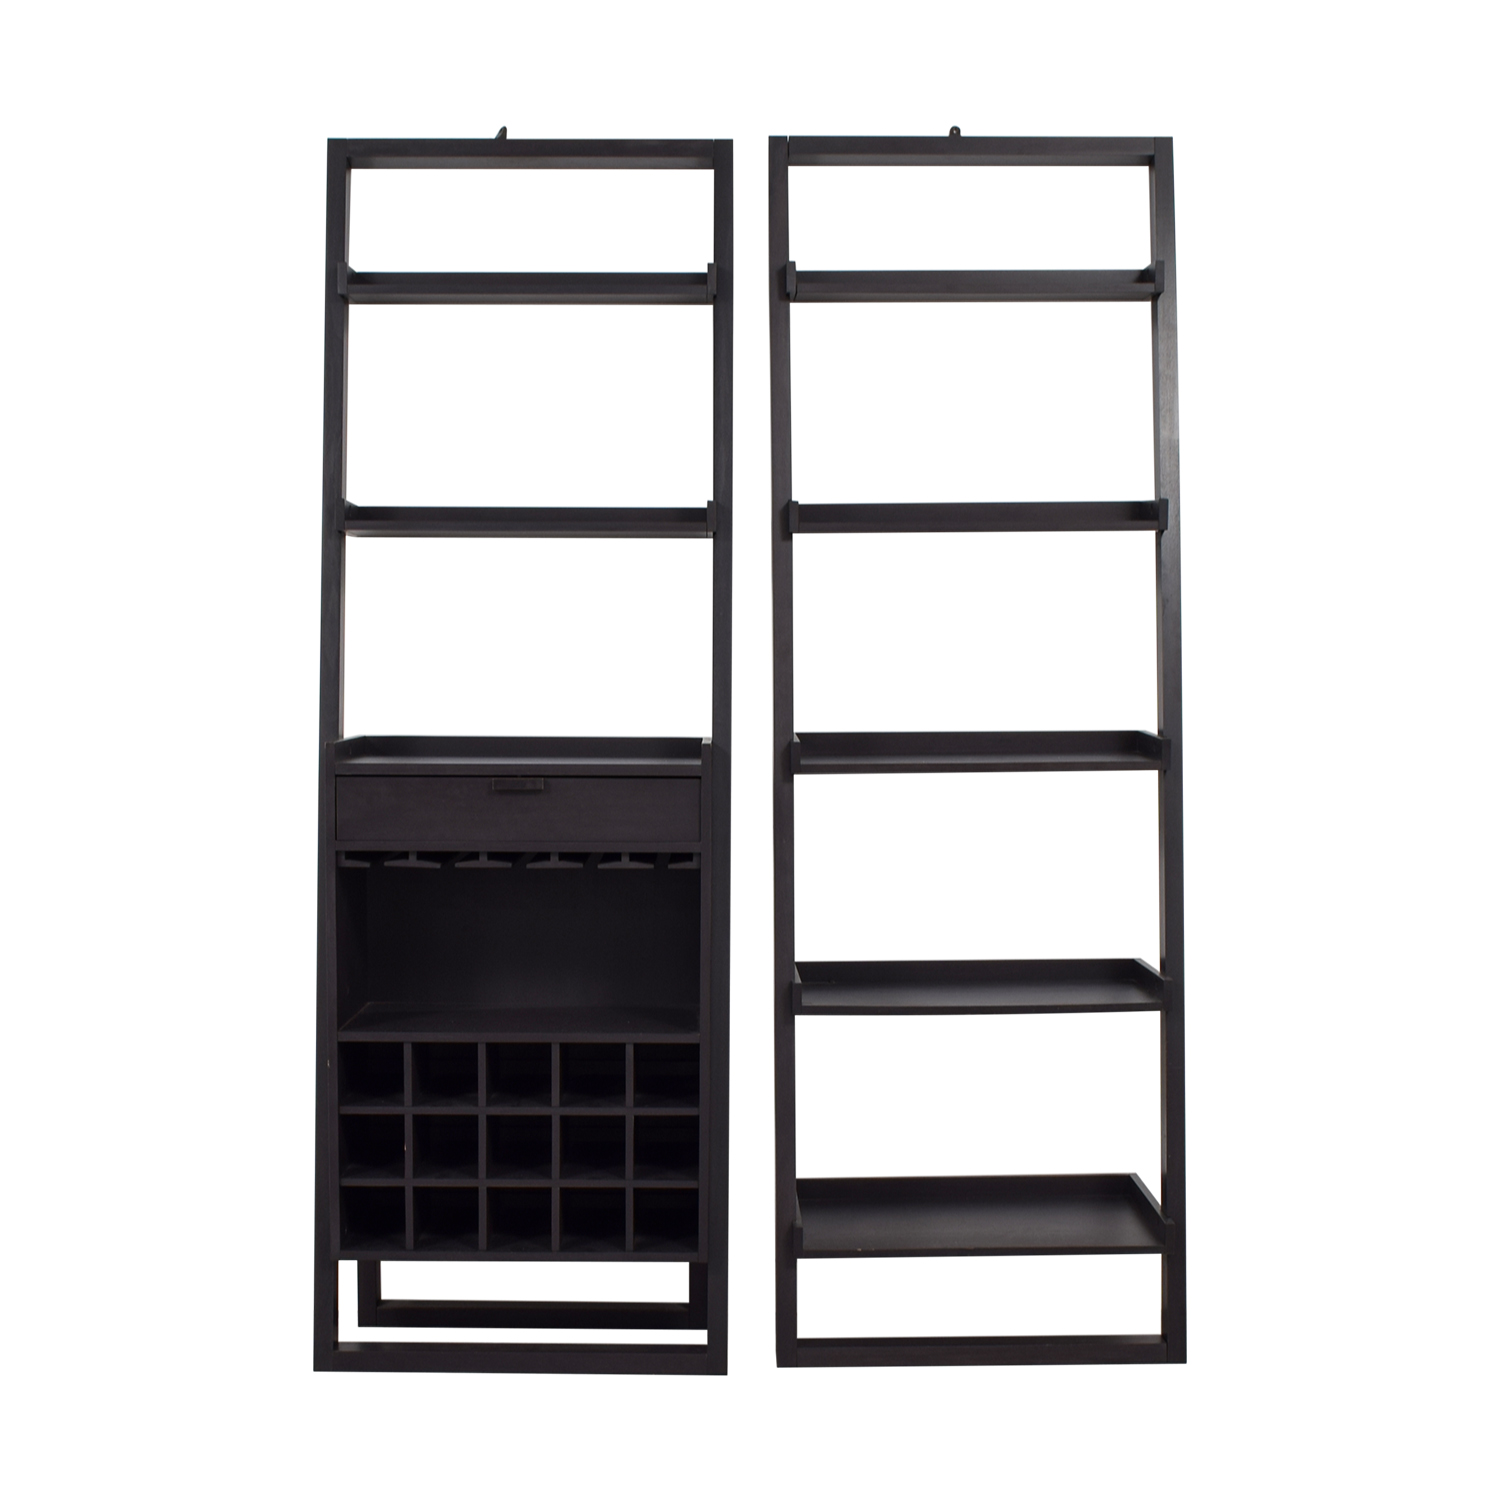 shop Crate & Barrel Leaning Bookcase and Leaning Wine Bar Crate & Barrel Sofas